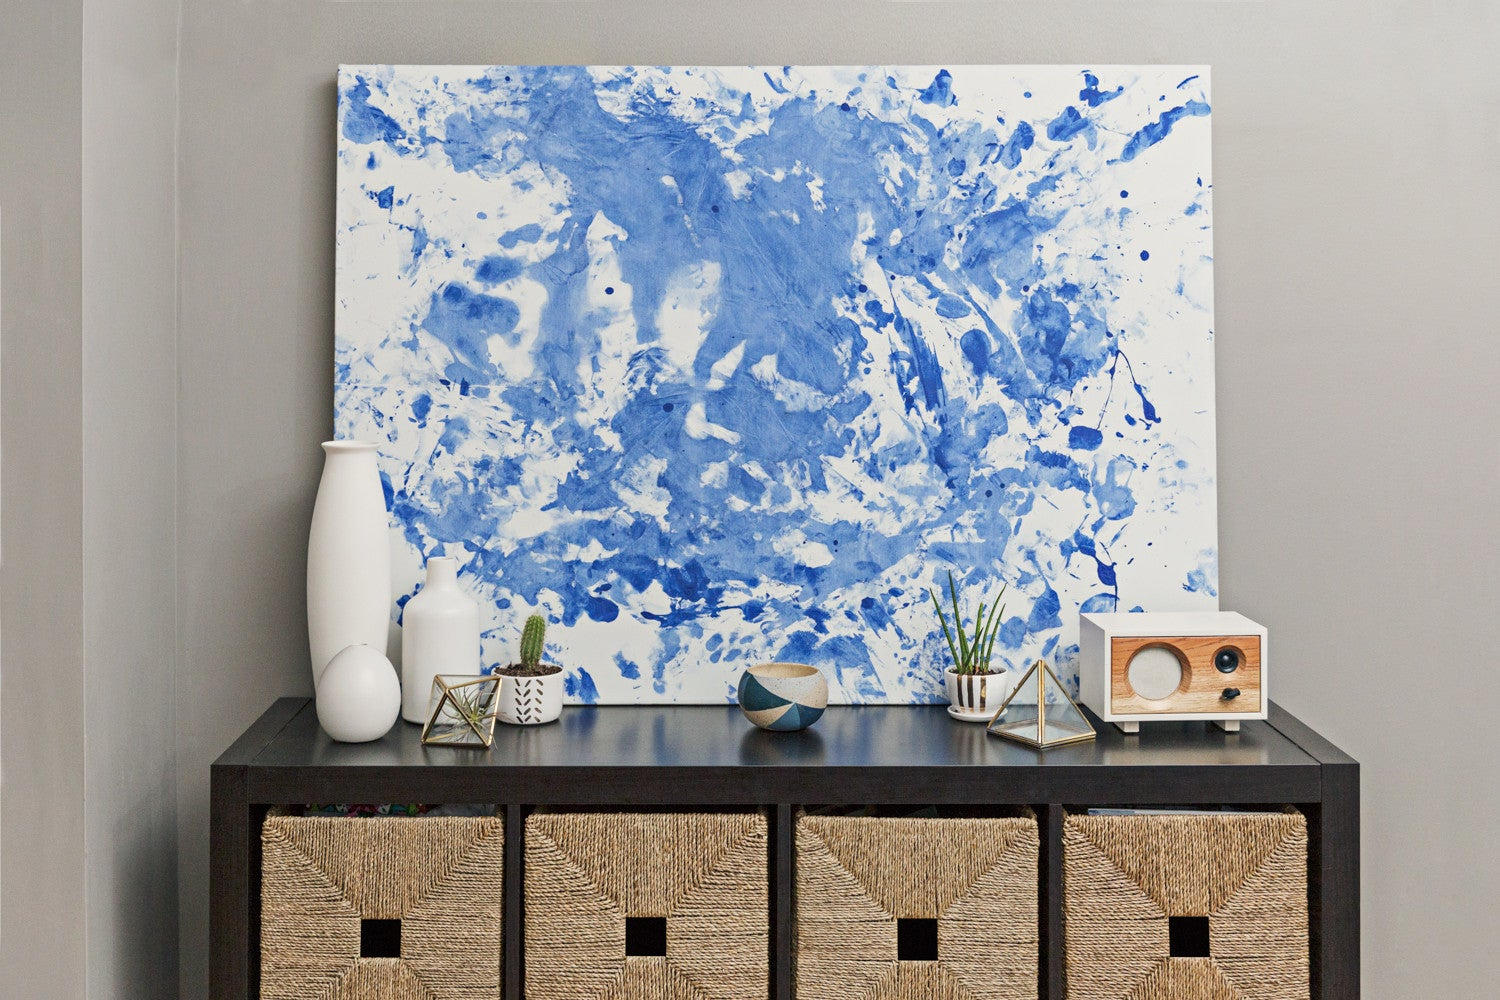 blue and white splatter painted  canvas